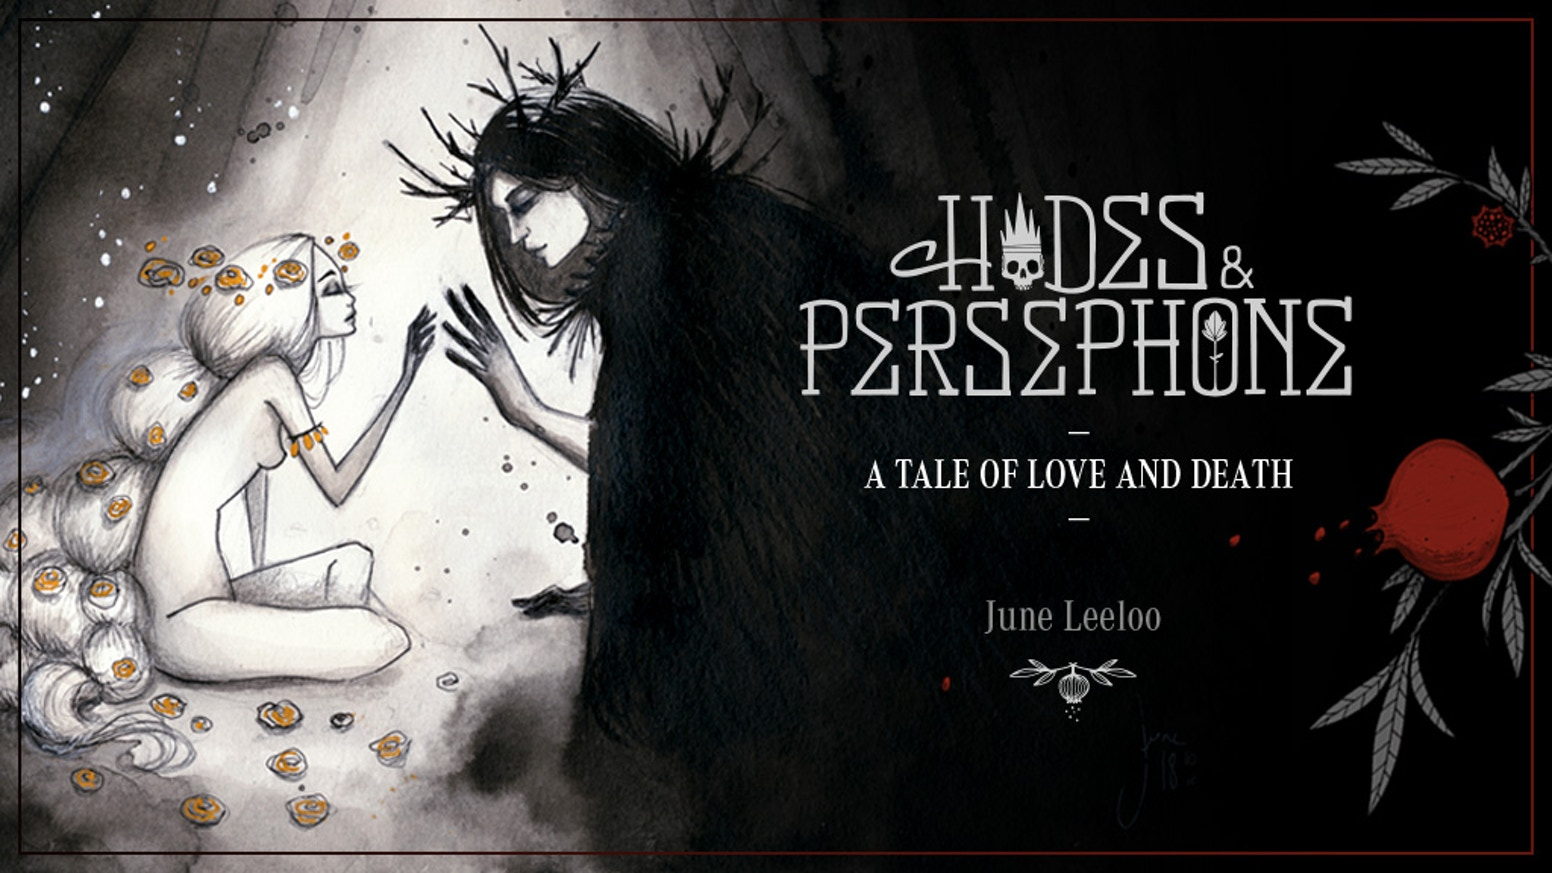 This second art book for artist June Leeloo is a poetic and sensual retelling of the Greek myth of Hades and Persephone.